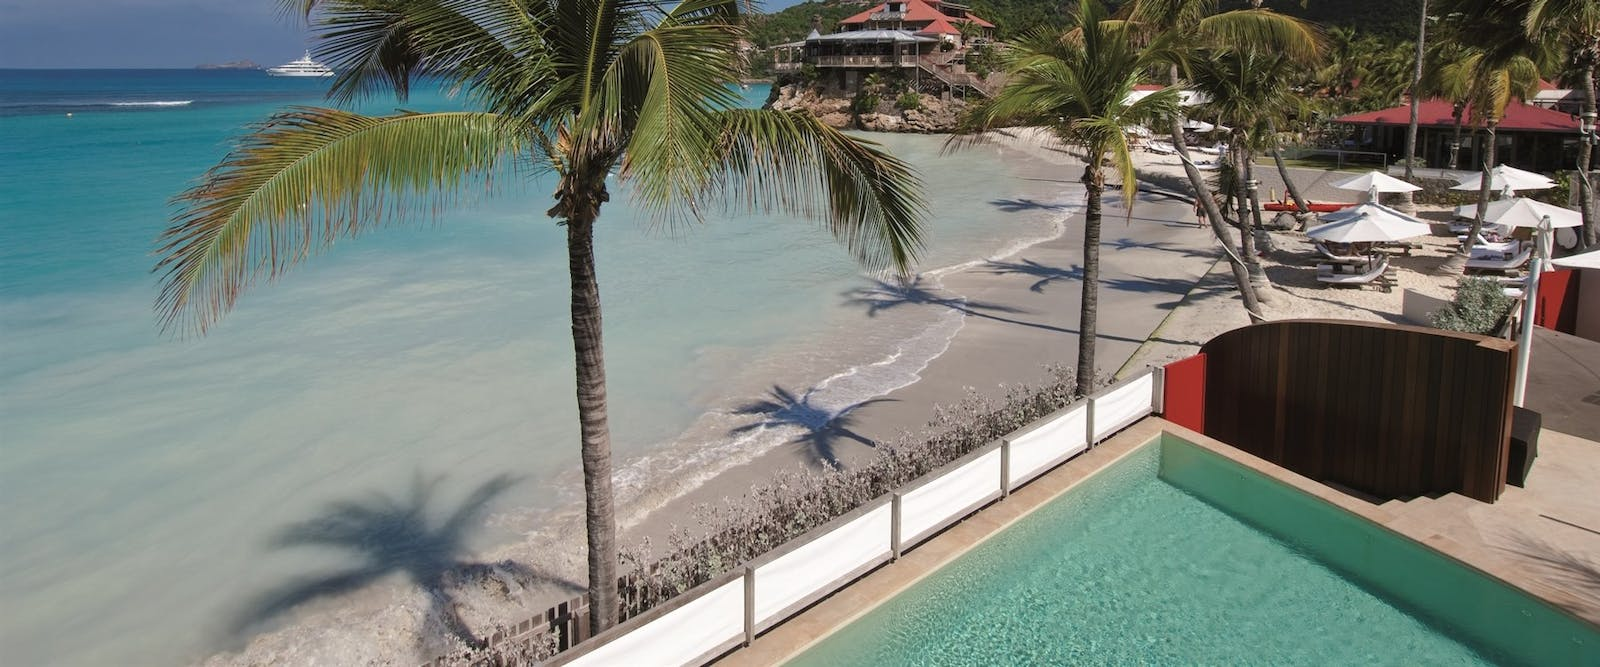 Swimming pool overlooking the ocean at Nina Villa at Rockstar & Nina at Eden Rock